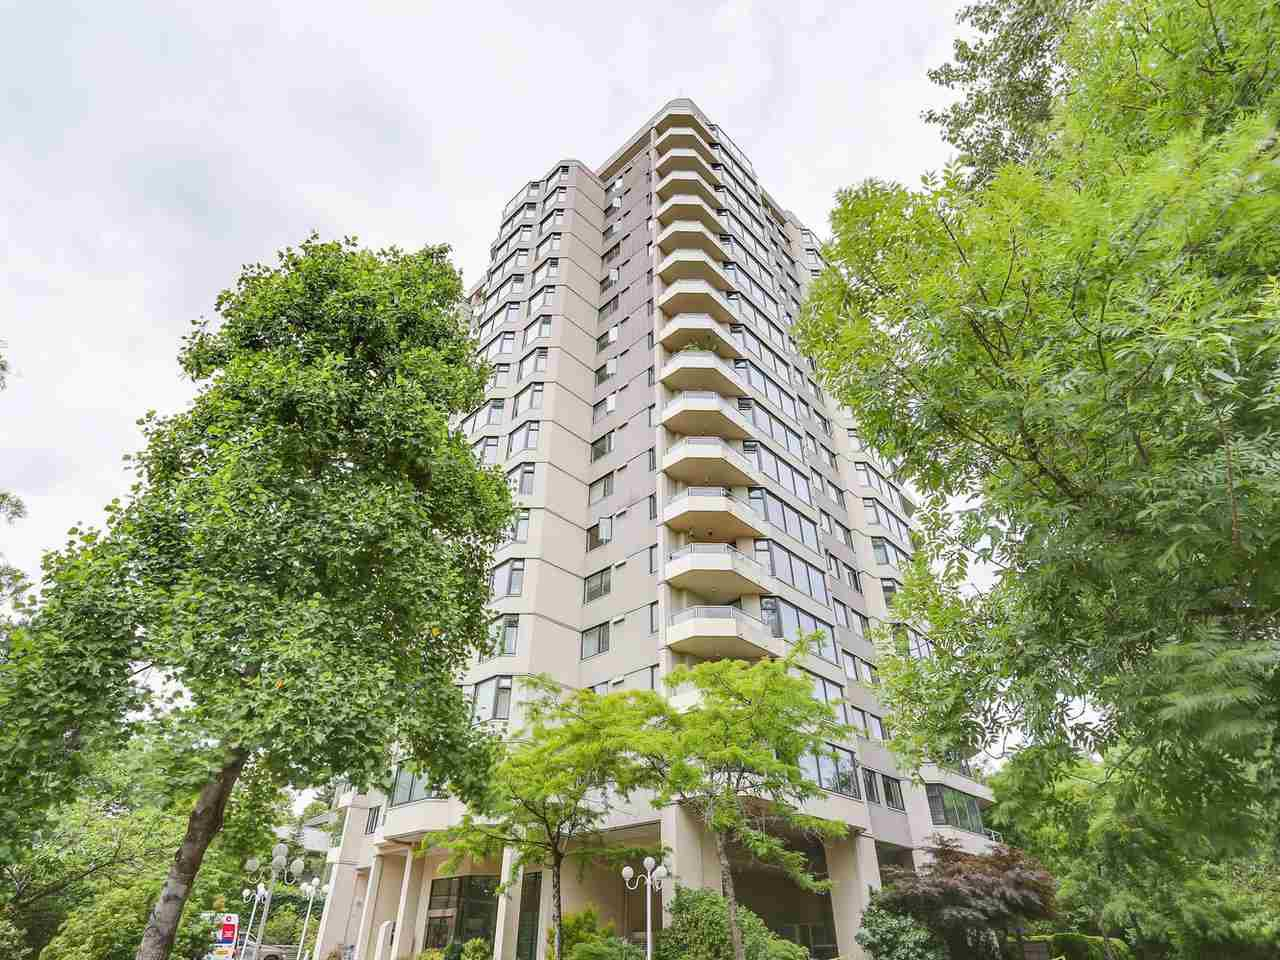 """Main Photo: 402 7321 HALIFAX Street in Burnaby: Simon Fraser Univer. Condo for sale in """"THE AMBASSADOR"""" (Burnaby North)  : MLS®# R2377106"""